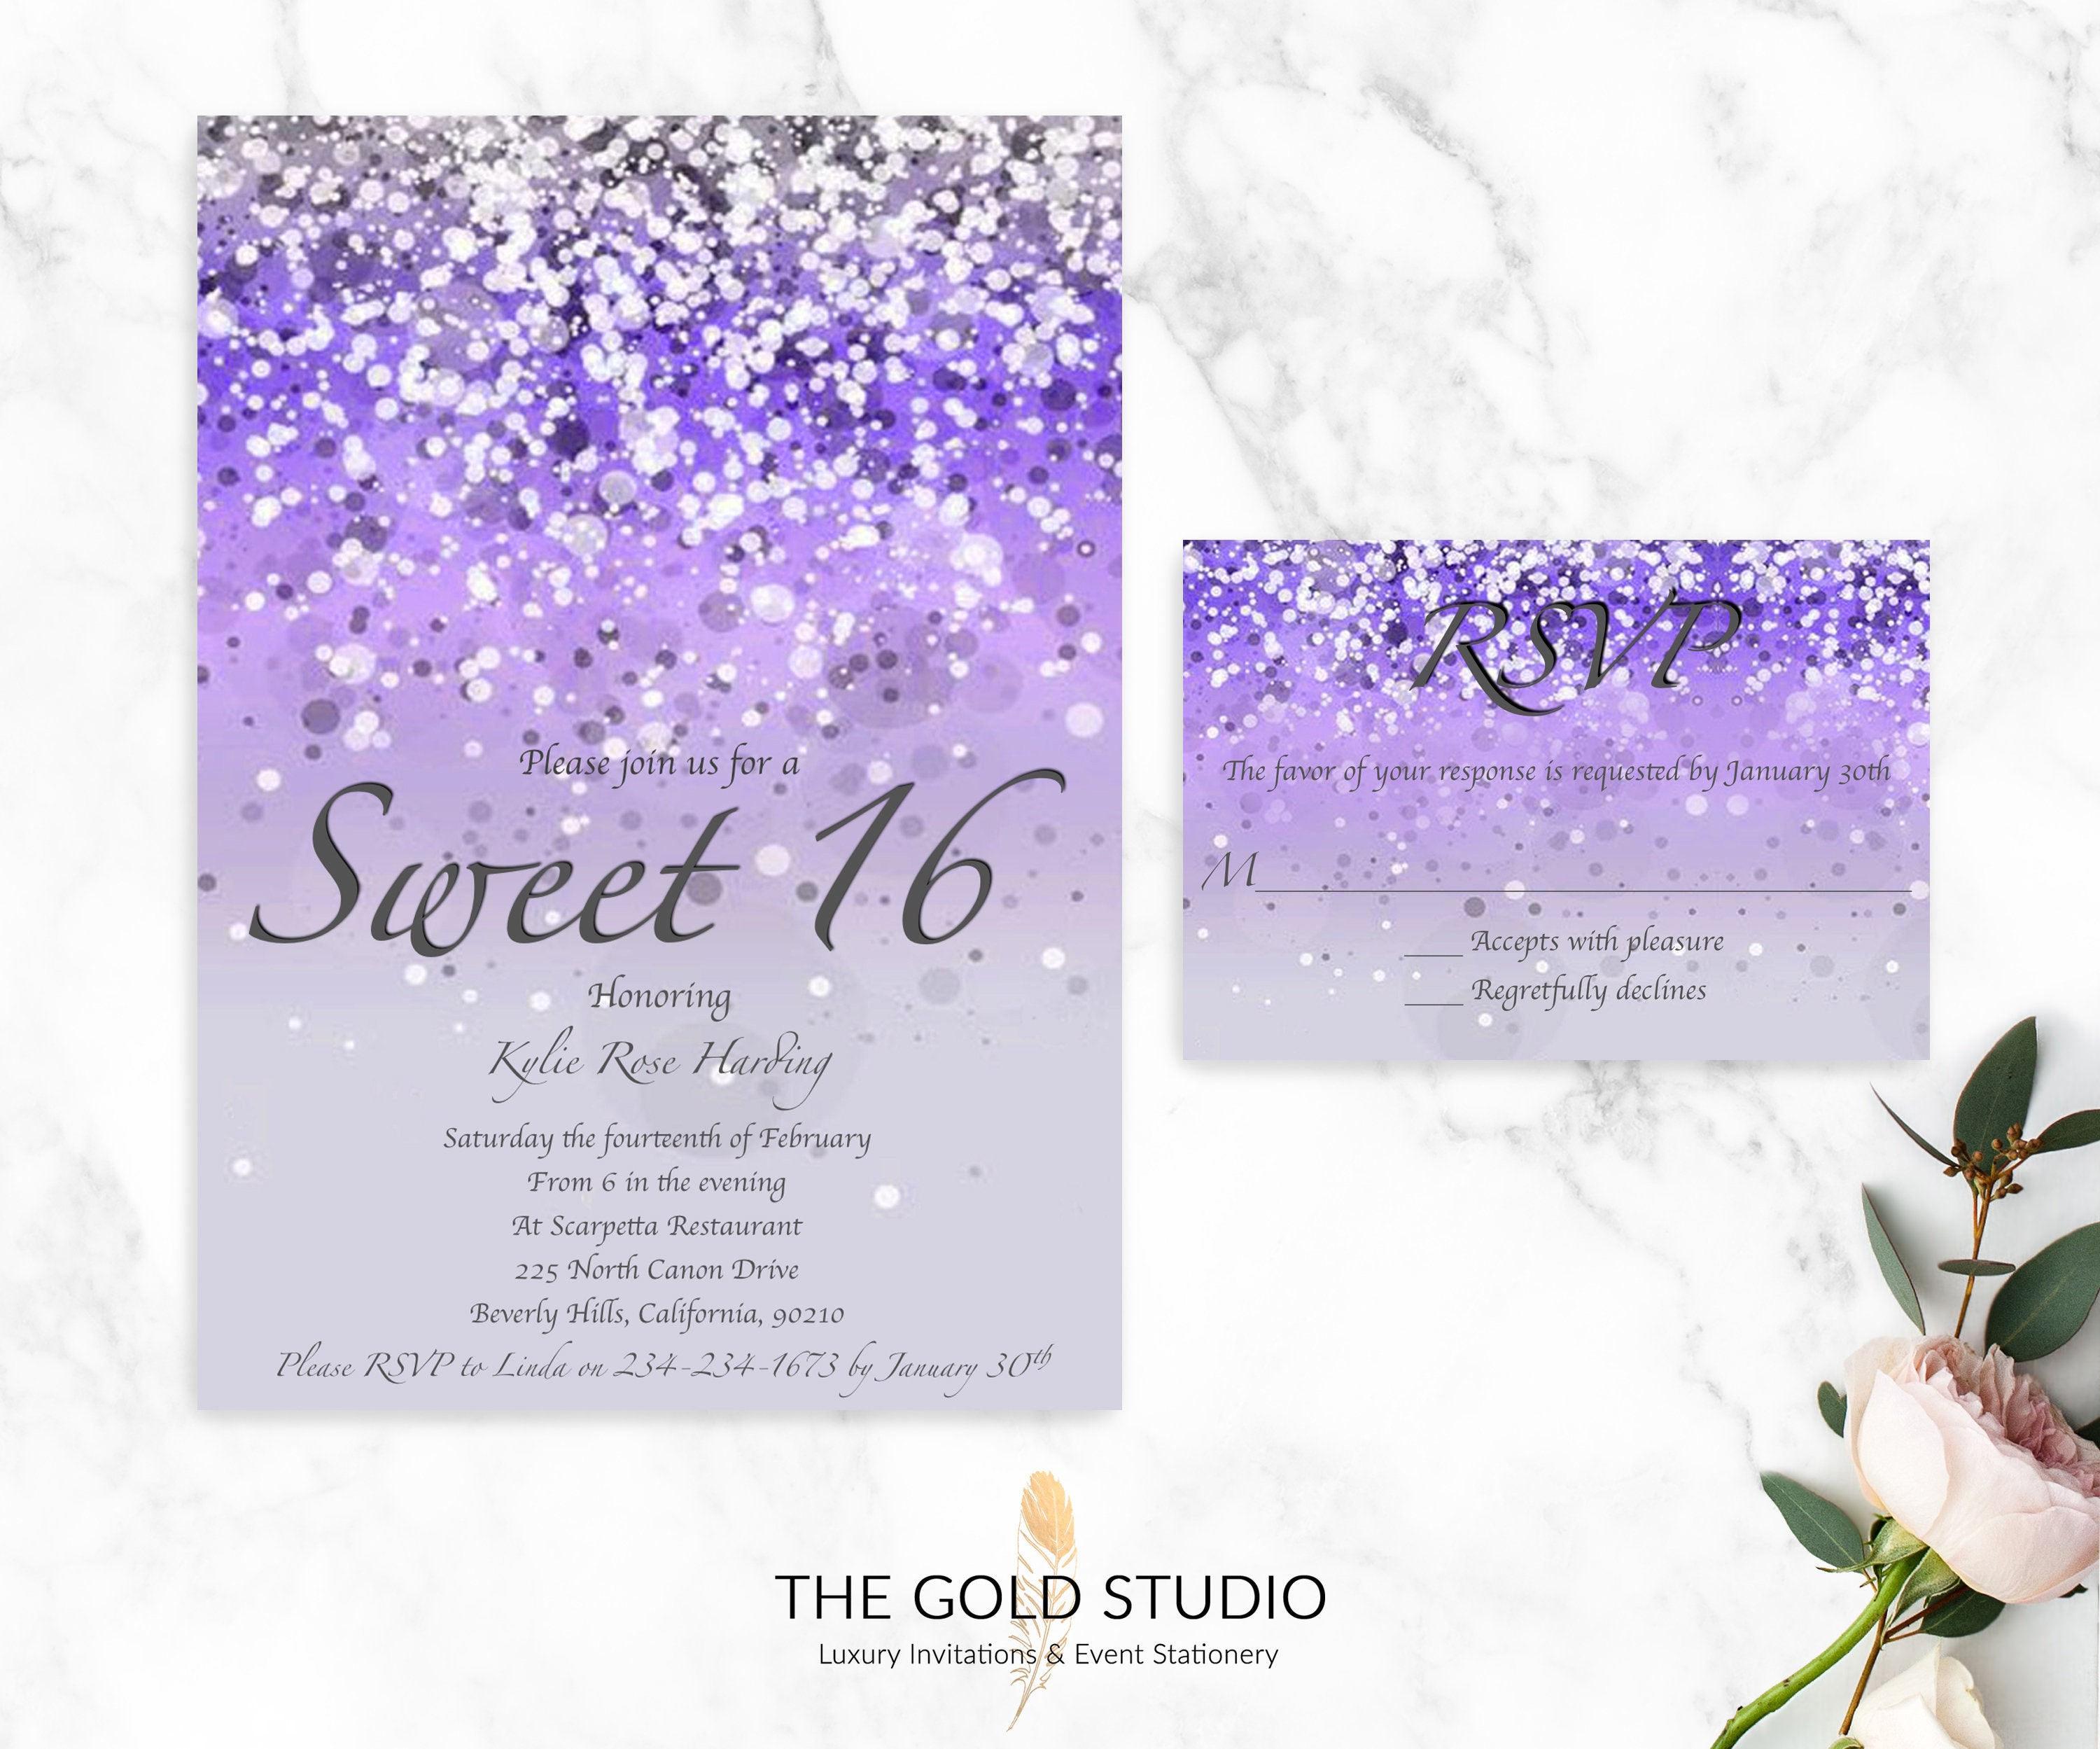 Sweet 16 Invitation RSVP